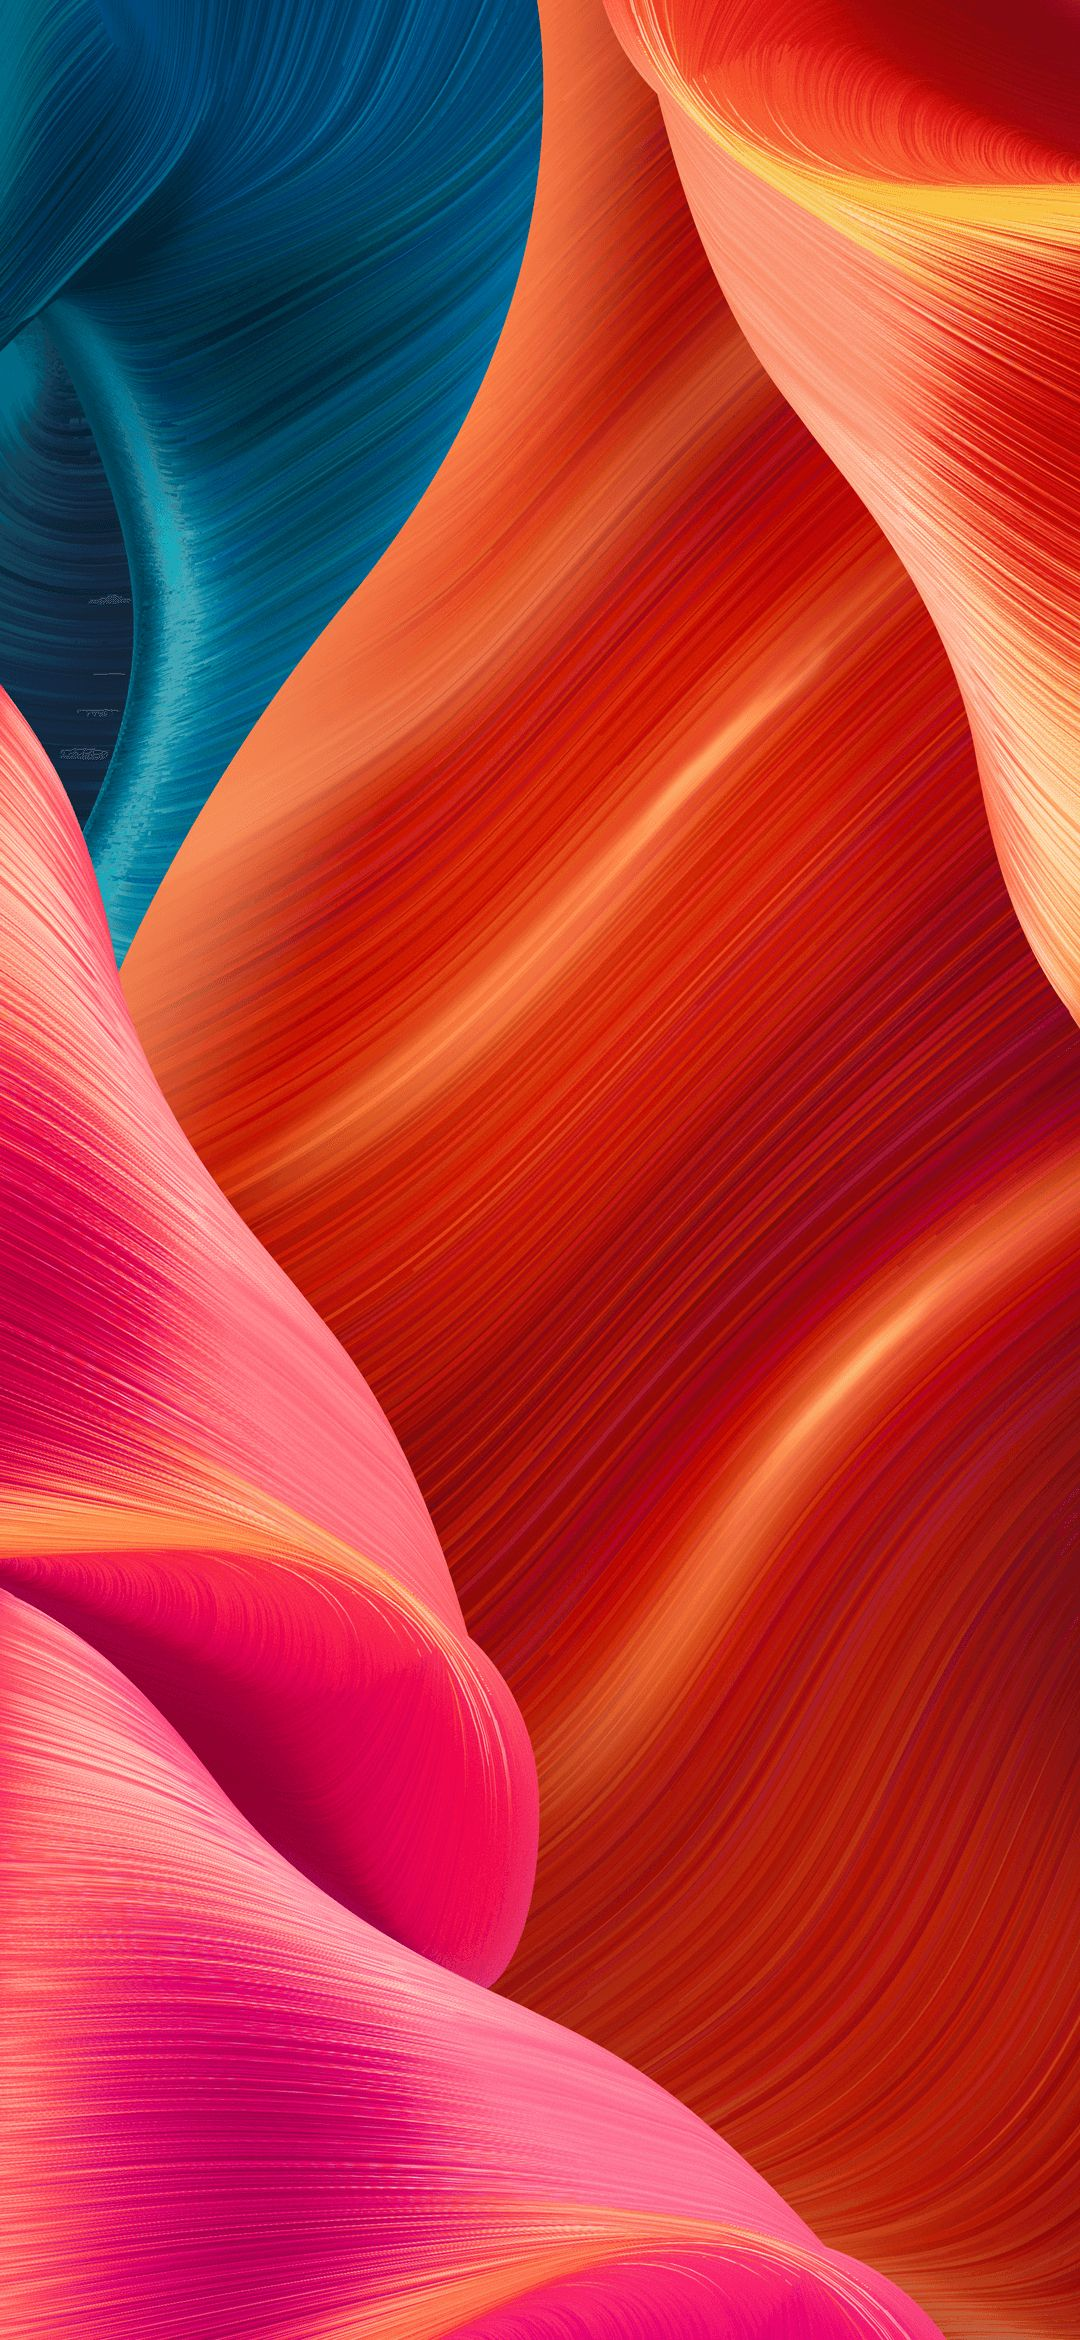 Coloros 7 Wallpaper Ytechb Exclusive Iphone Homescreen Wallpaper Smartphone Wallpaper Mobile Wallpaper Android Full hd new wallpaper oppo